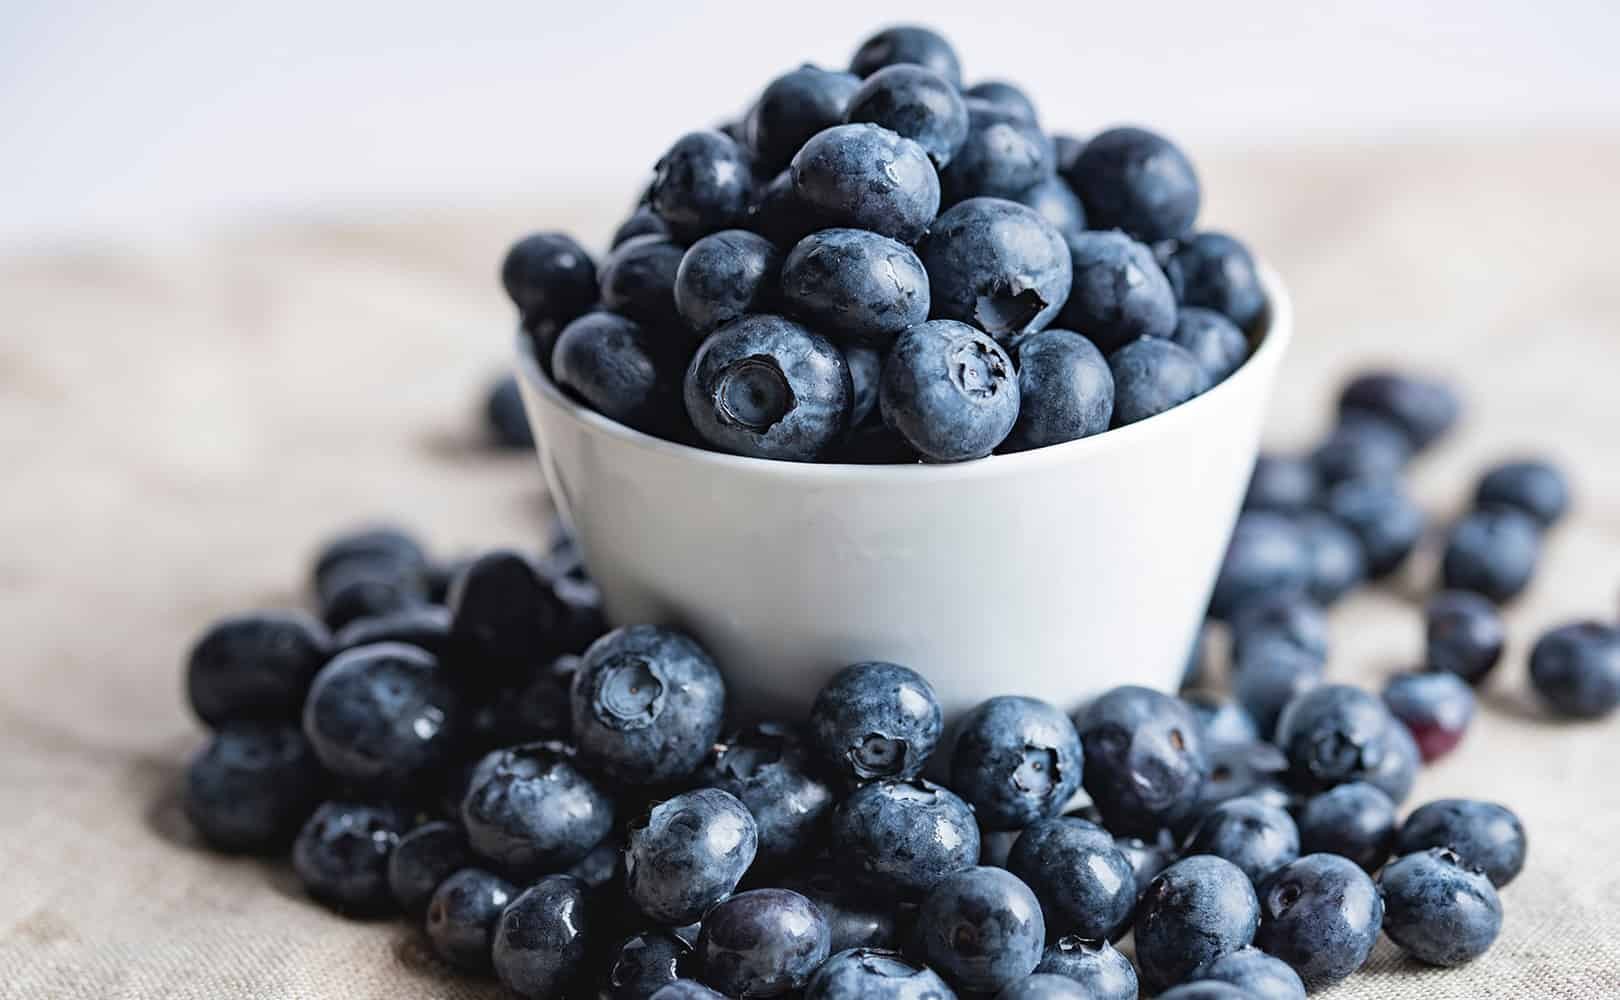 Blueberries in a small white bowl, surrounded by blueberries.